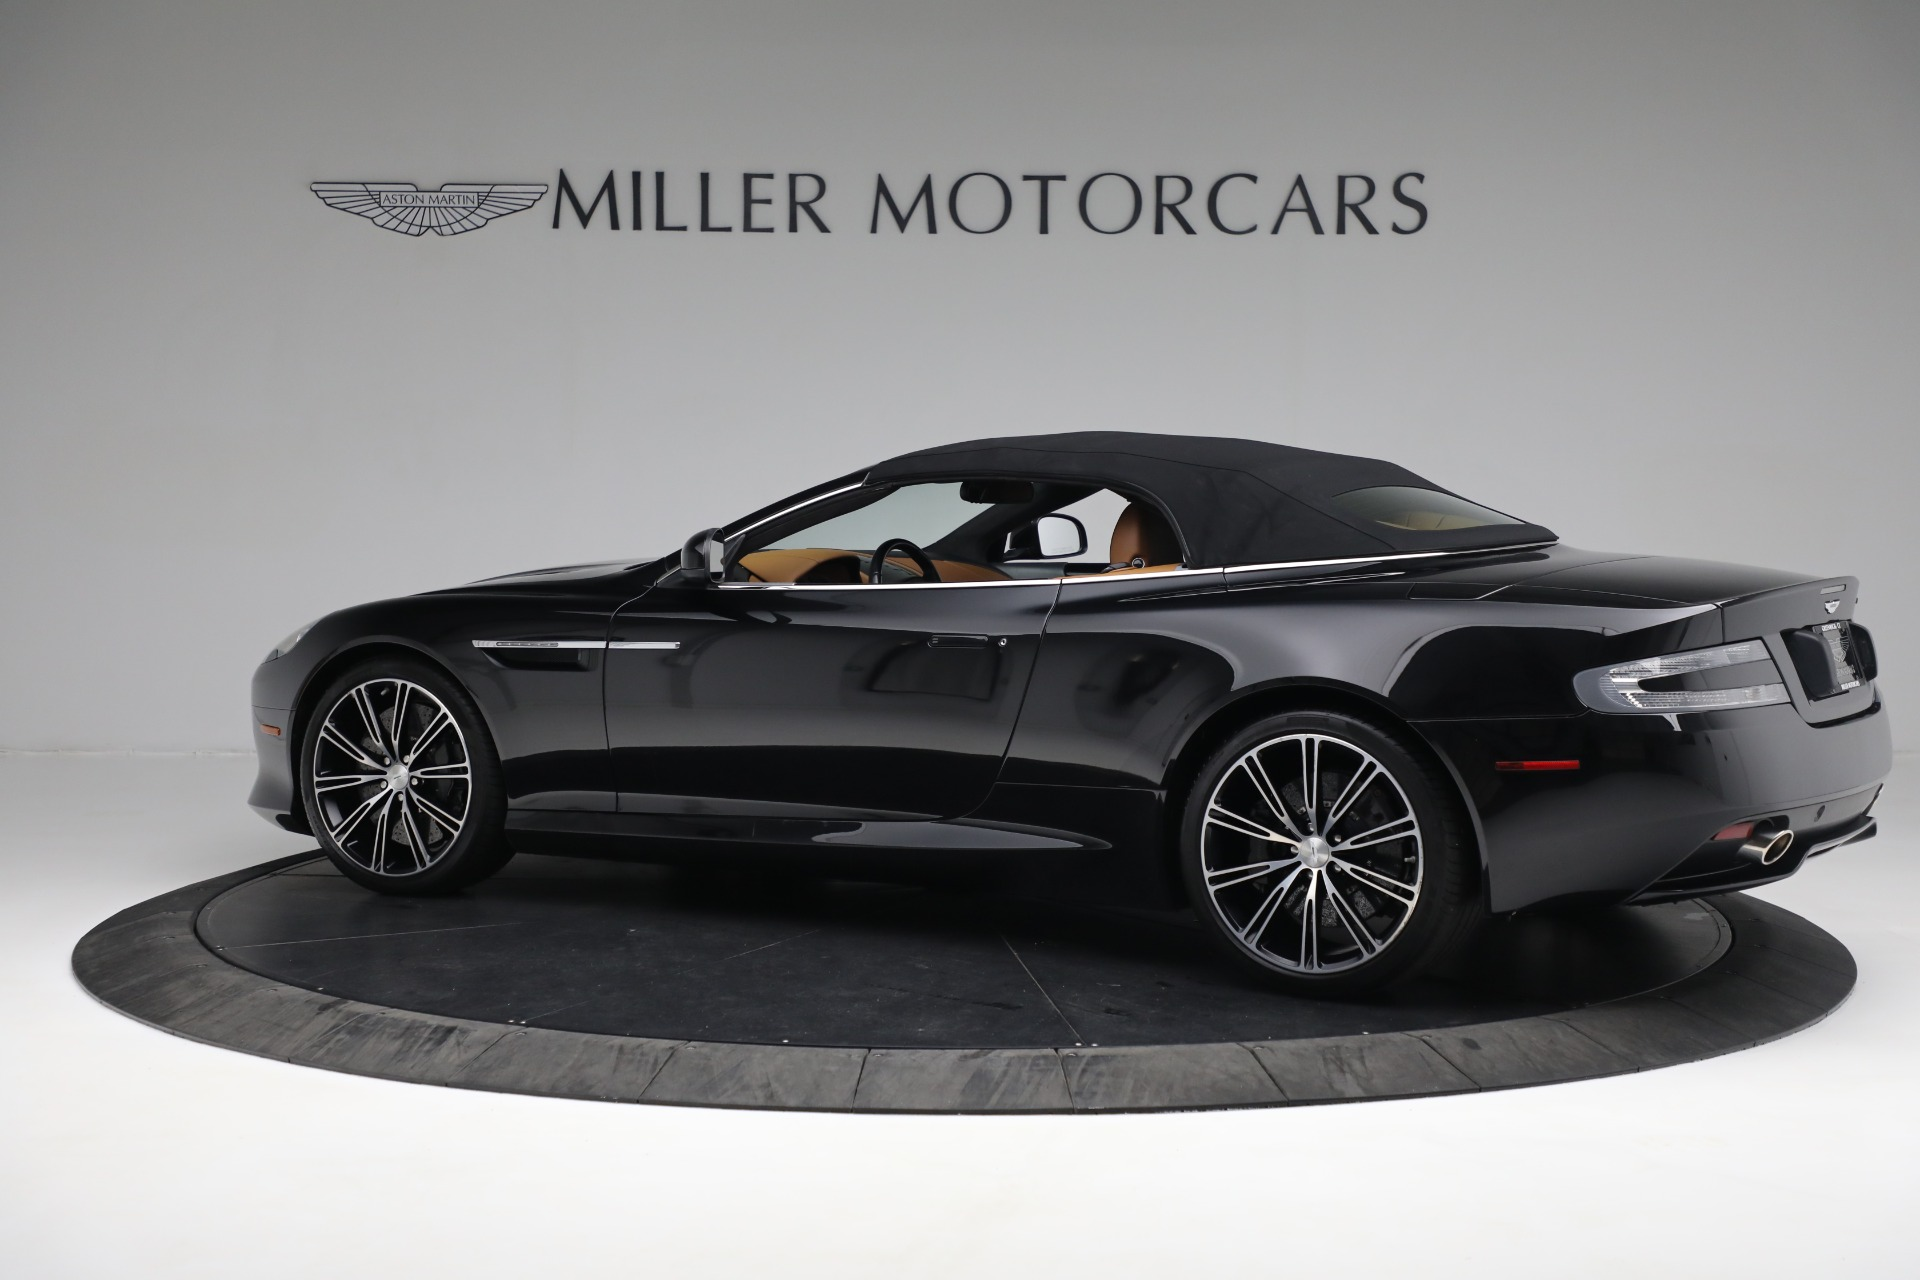 Used 2012 Aston Martin Virage Volante For Sale In Westport, CT 2244_p17